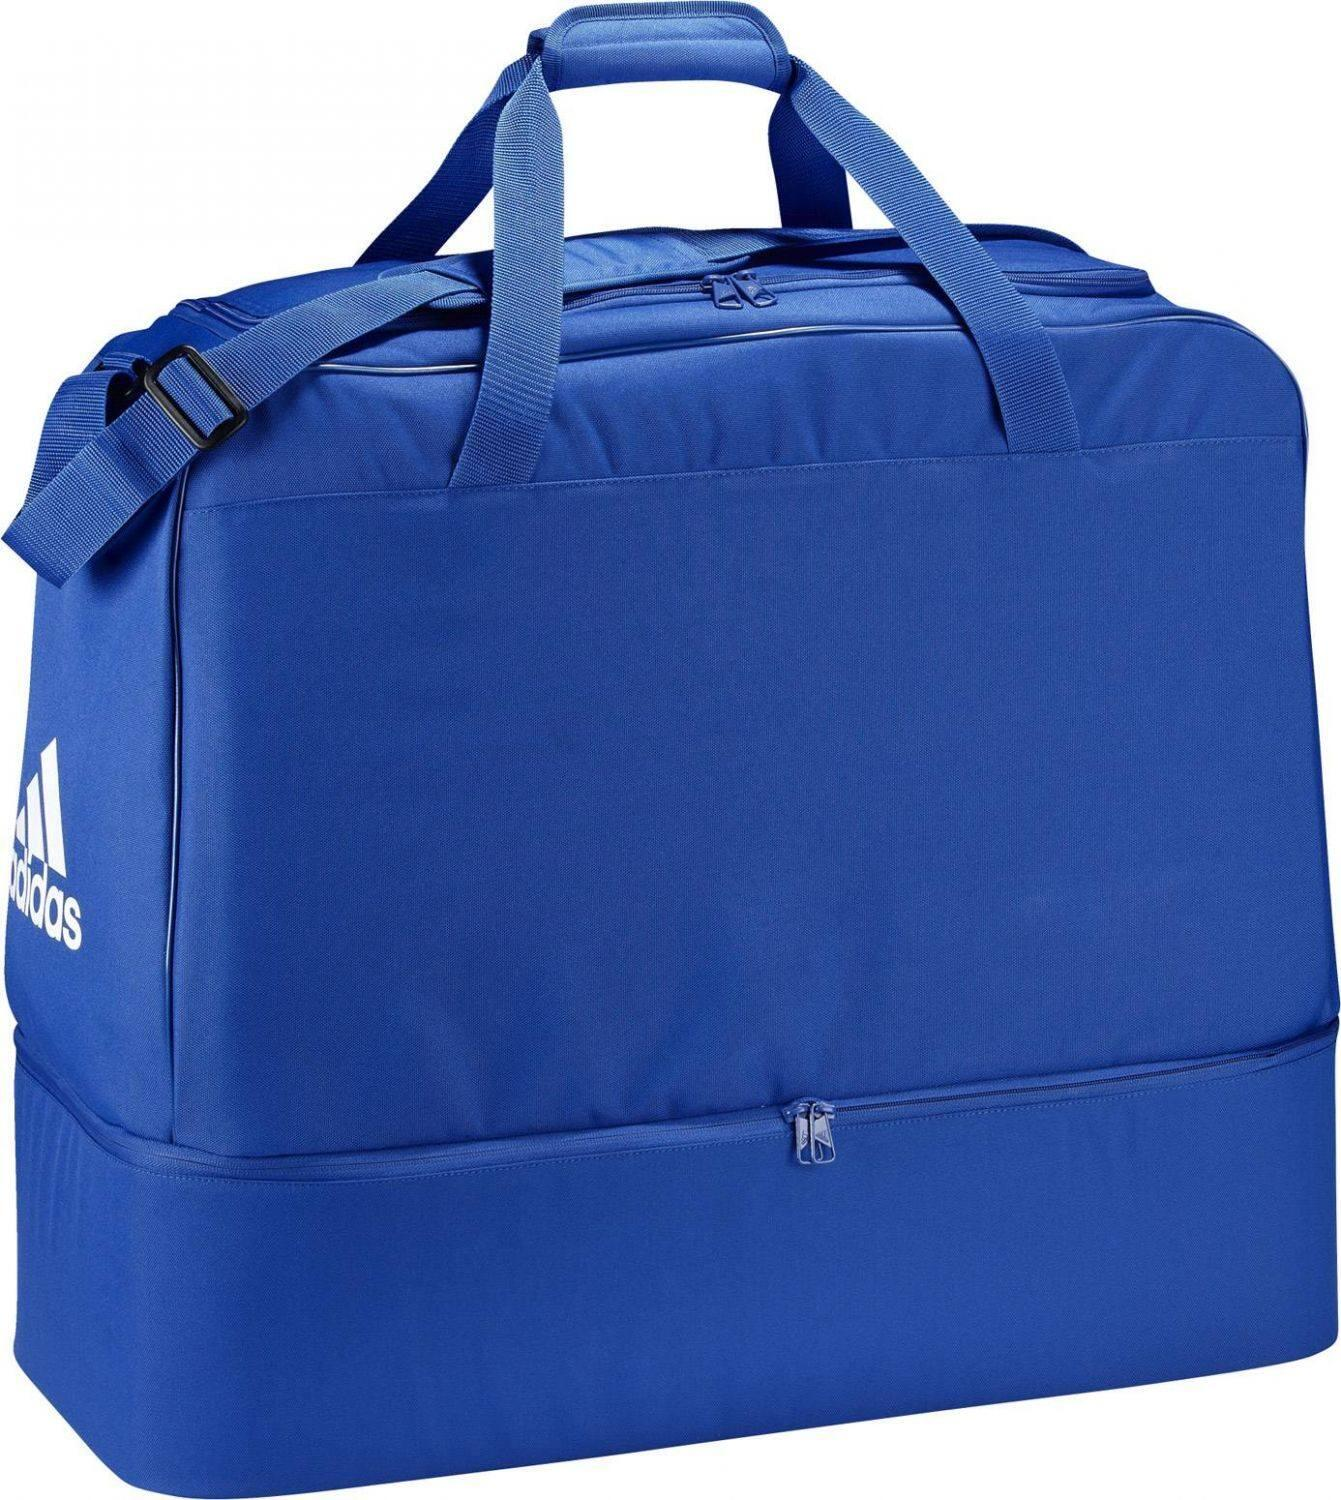 adidas-teambag-with-bottom-compartment-farbe-bold-blue-white-